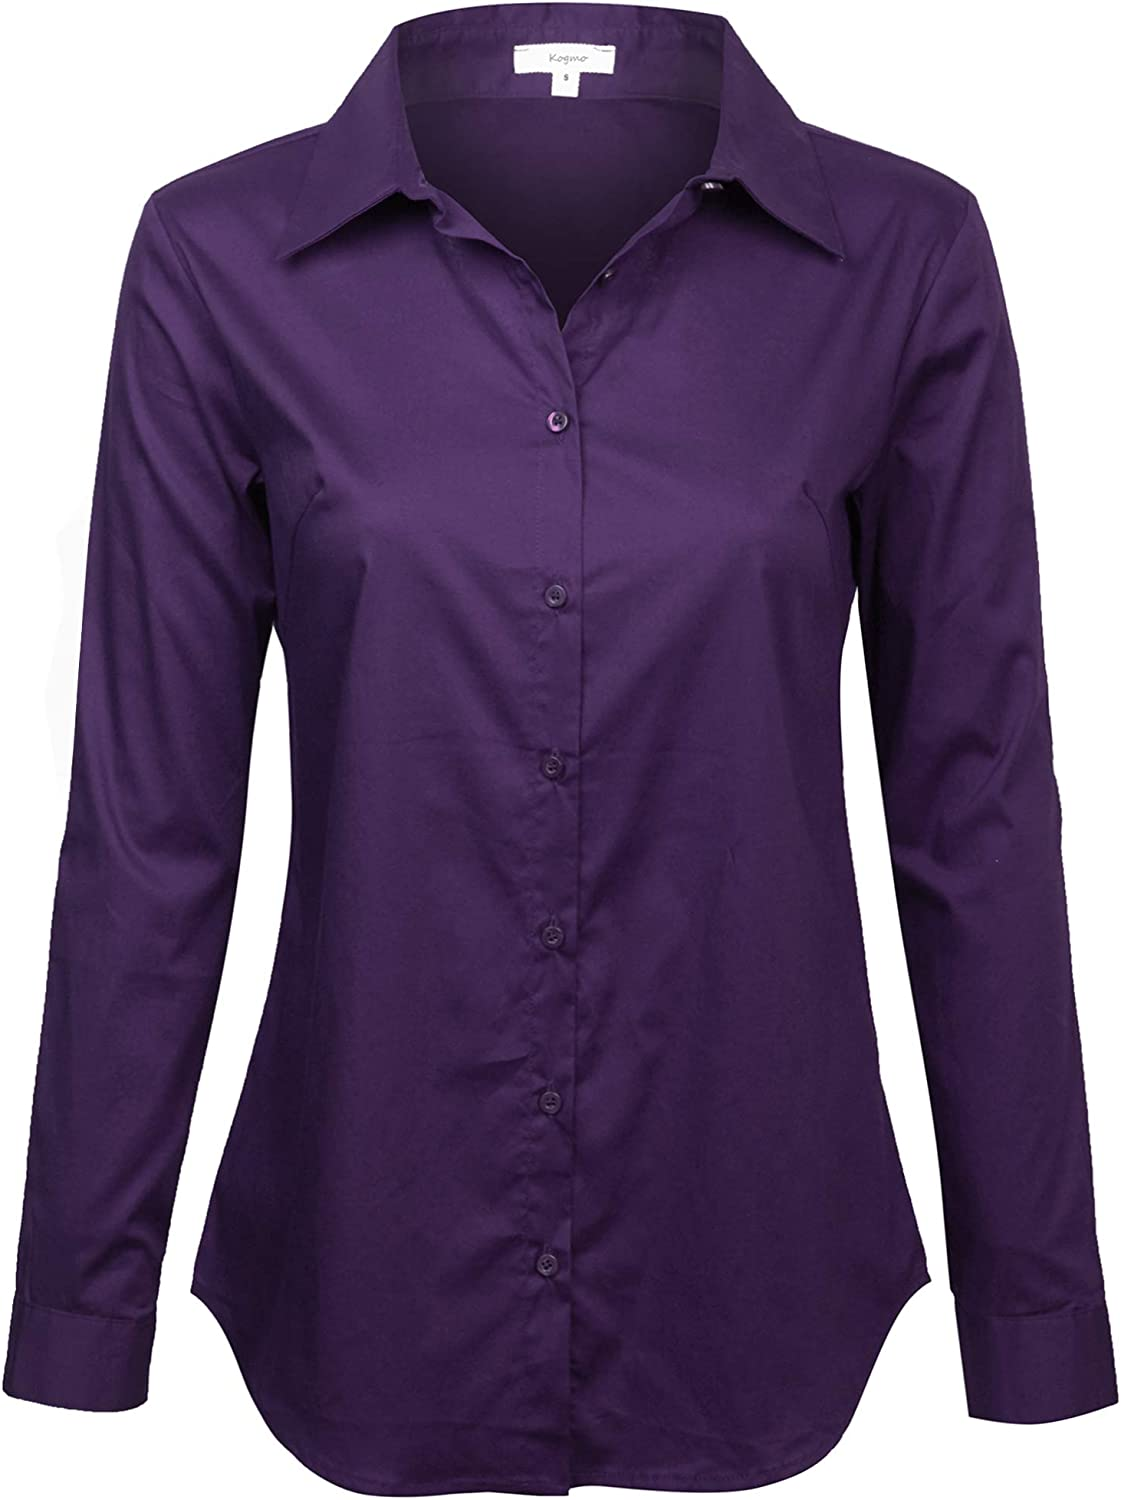 KOGMO Womens Basic Long Sleeve Button Down Shirts Office Work Blouse Regular Fit (S-3X)